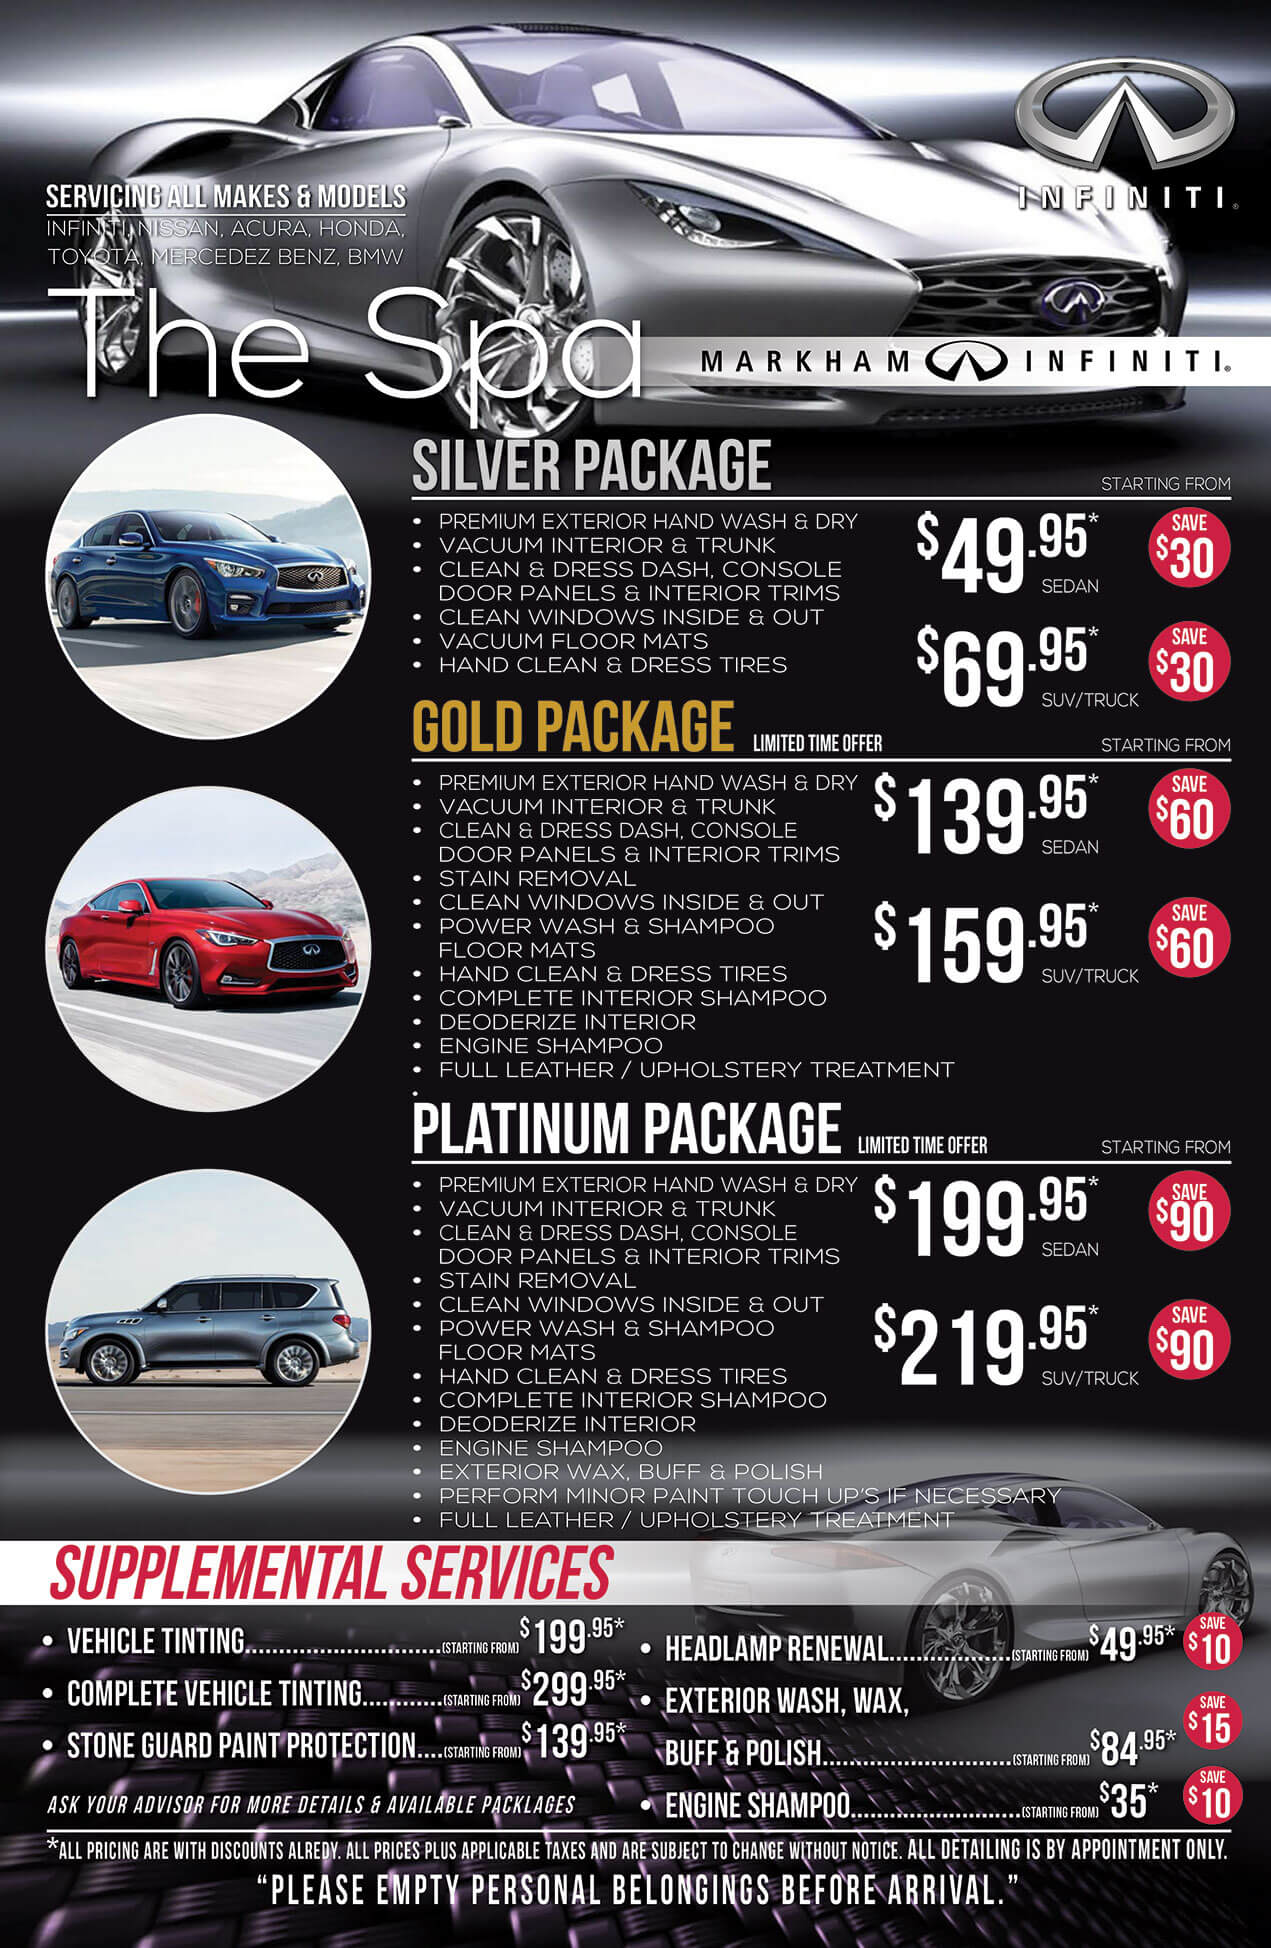 Car & SUV Detailing Packages @ Markham Infiniti